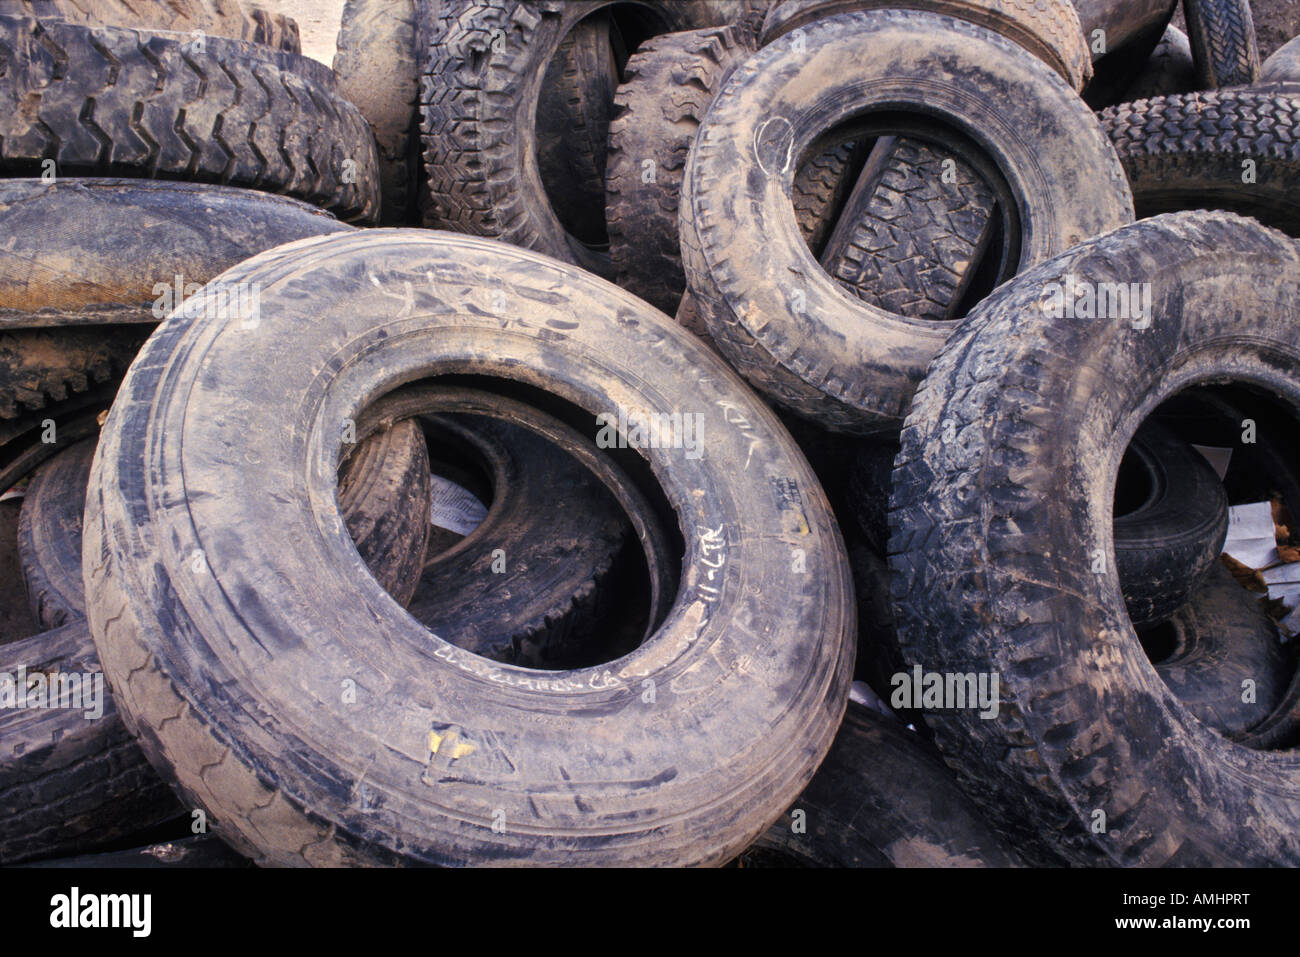 A pile of truck & auto tires waiting to be recycled - Stock Image